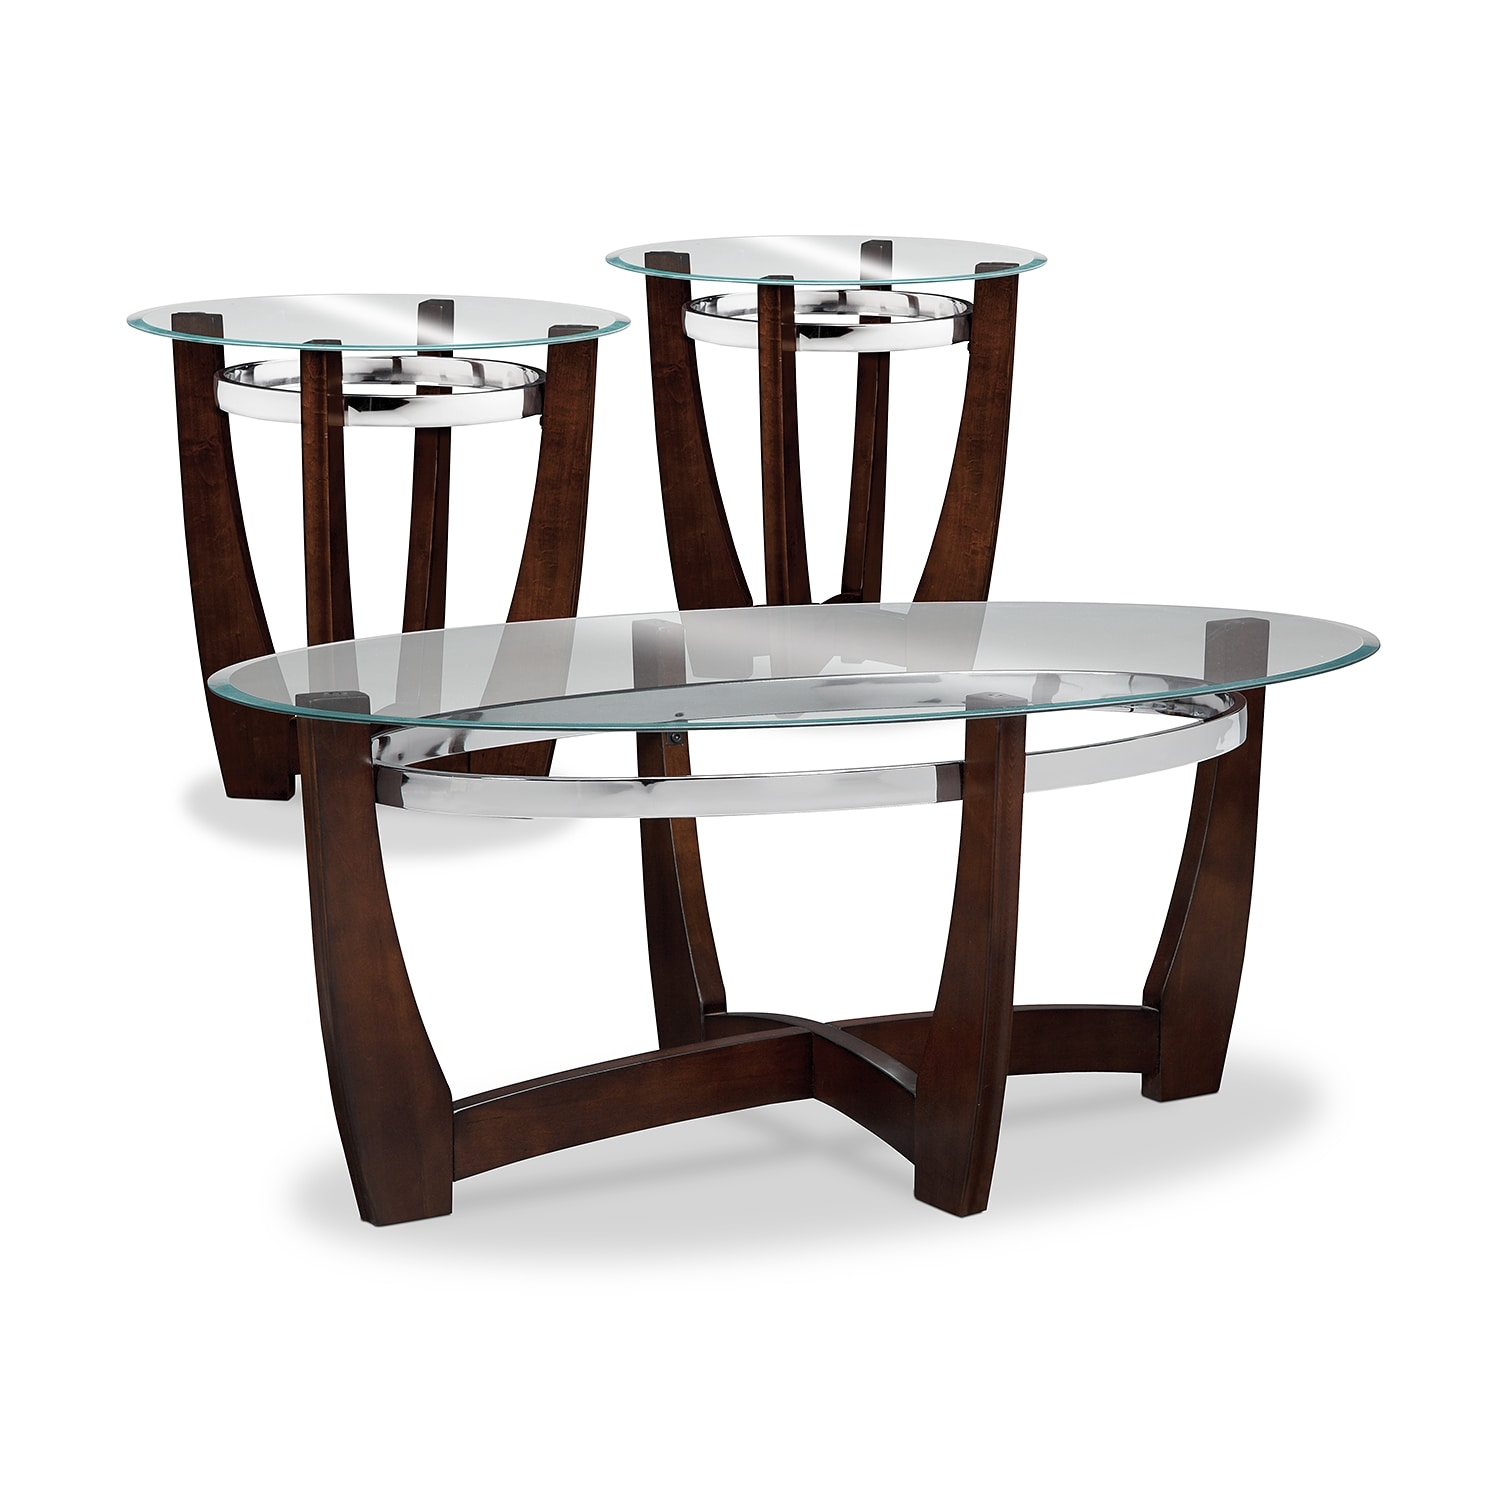 Living Room Sets Value City Furniture alcove cocktail table and 2 end tables - merlot | value city furniture